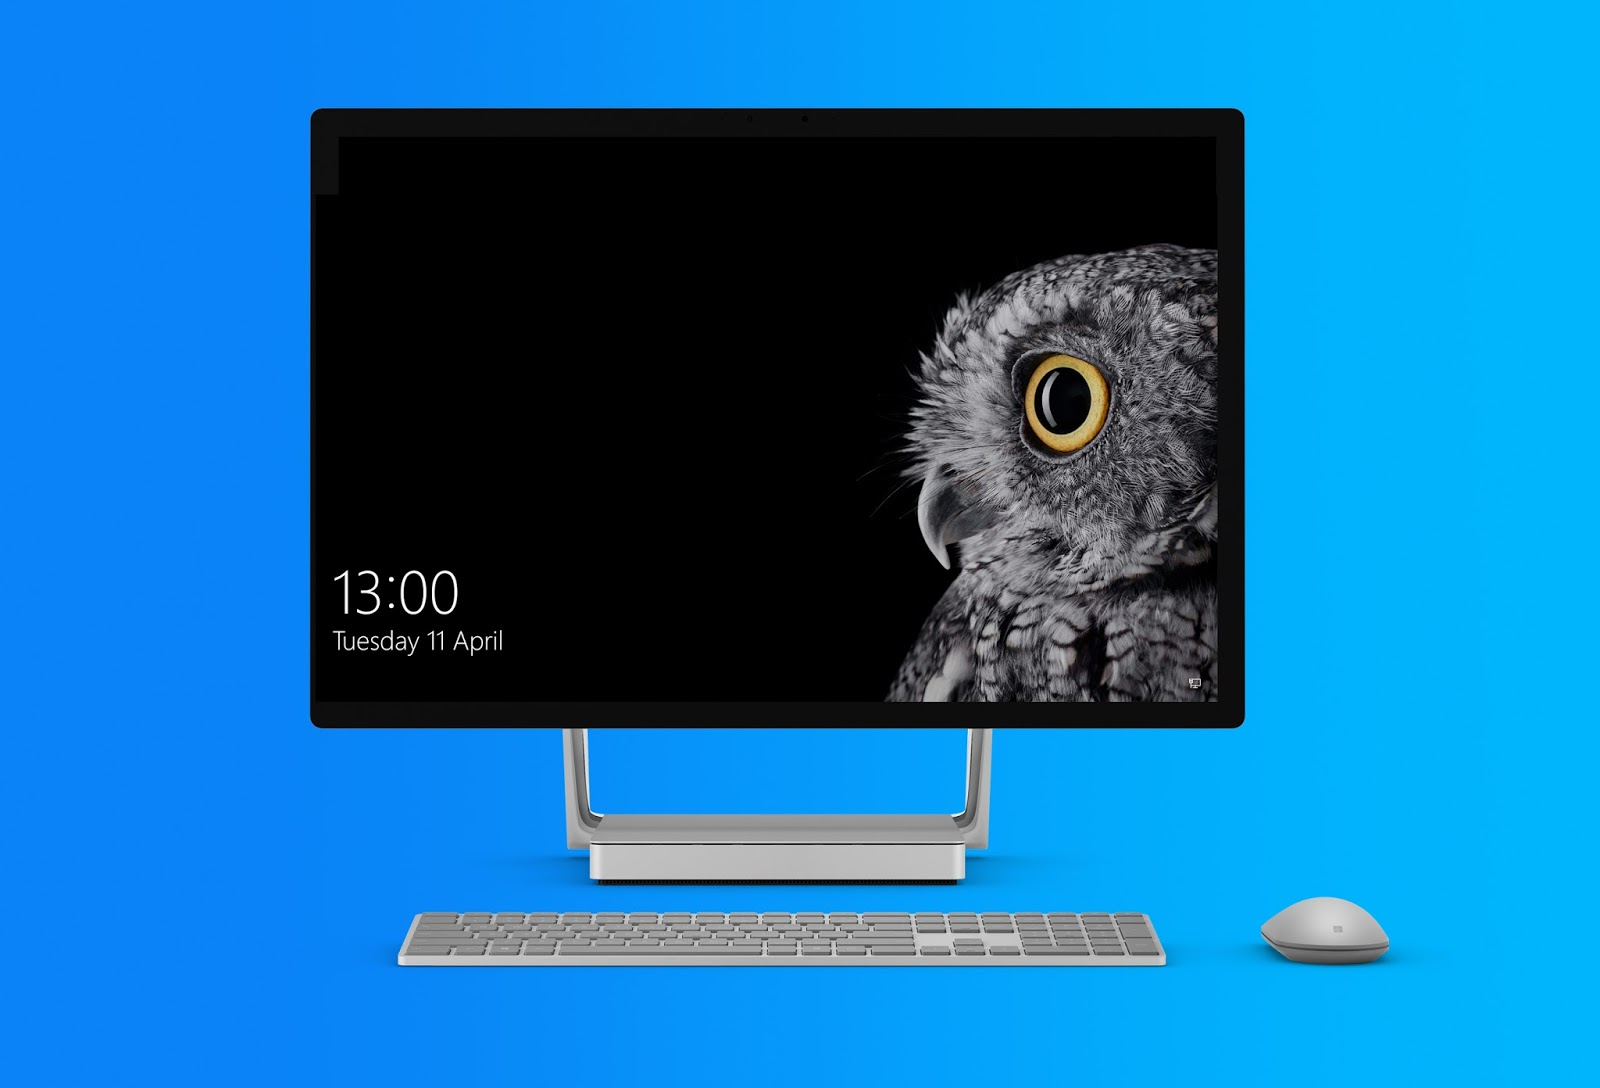 Windows-10-Creators-Update-11-Aprile